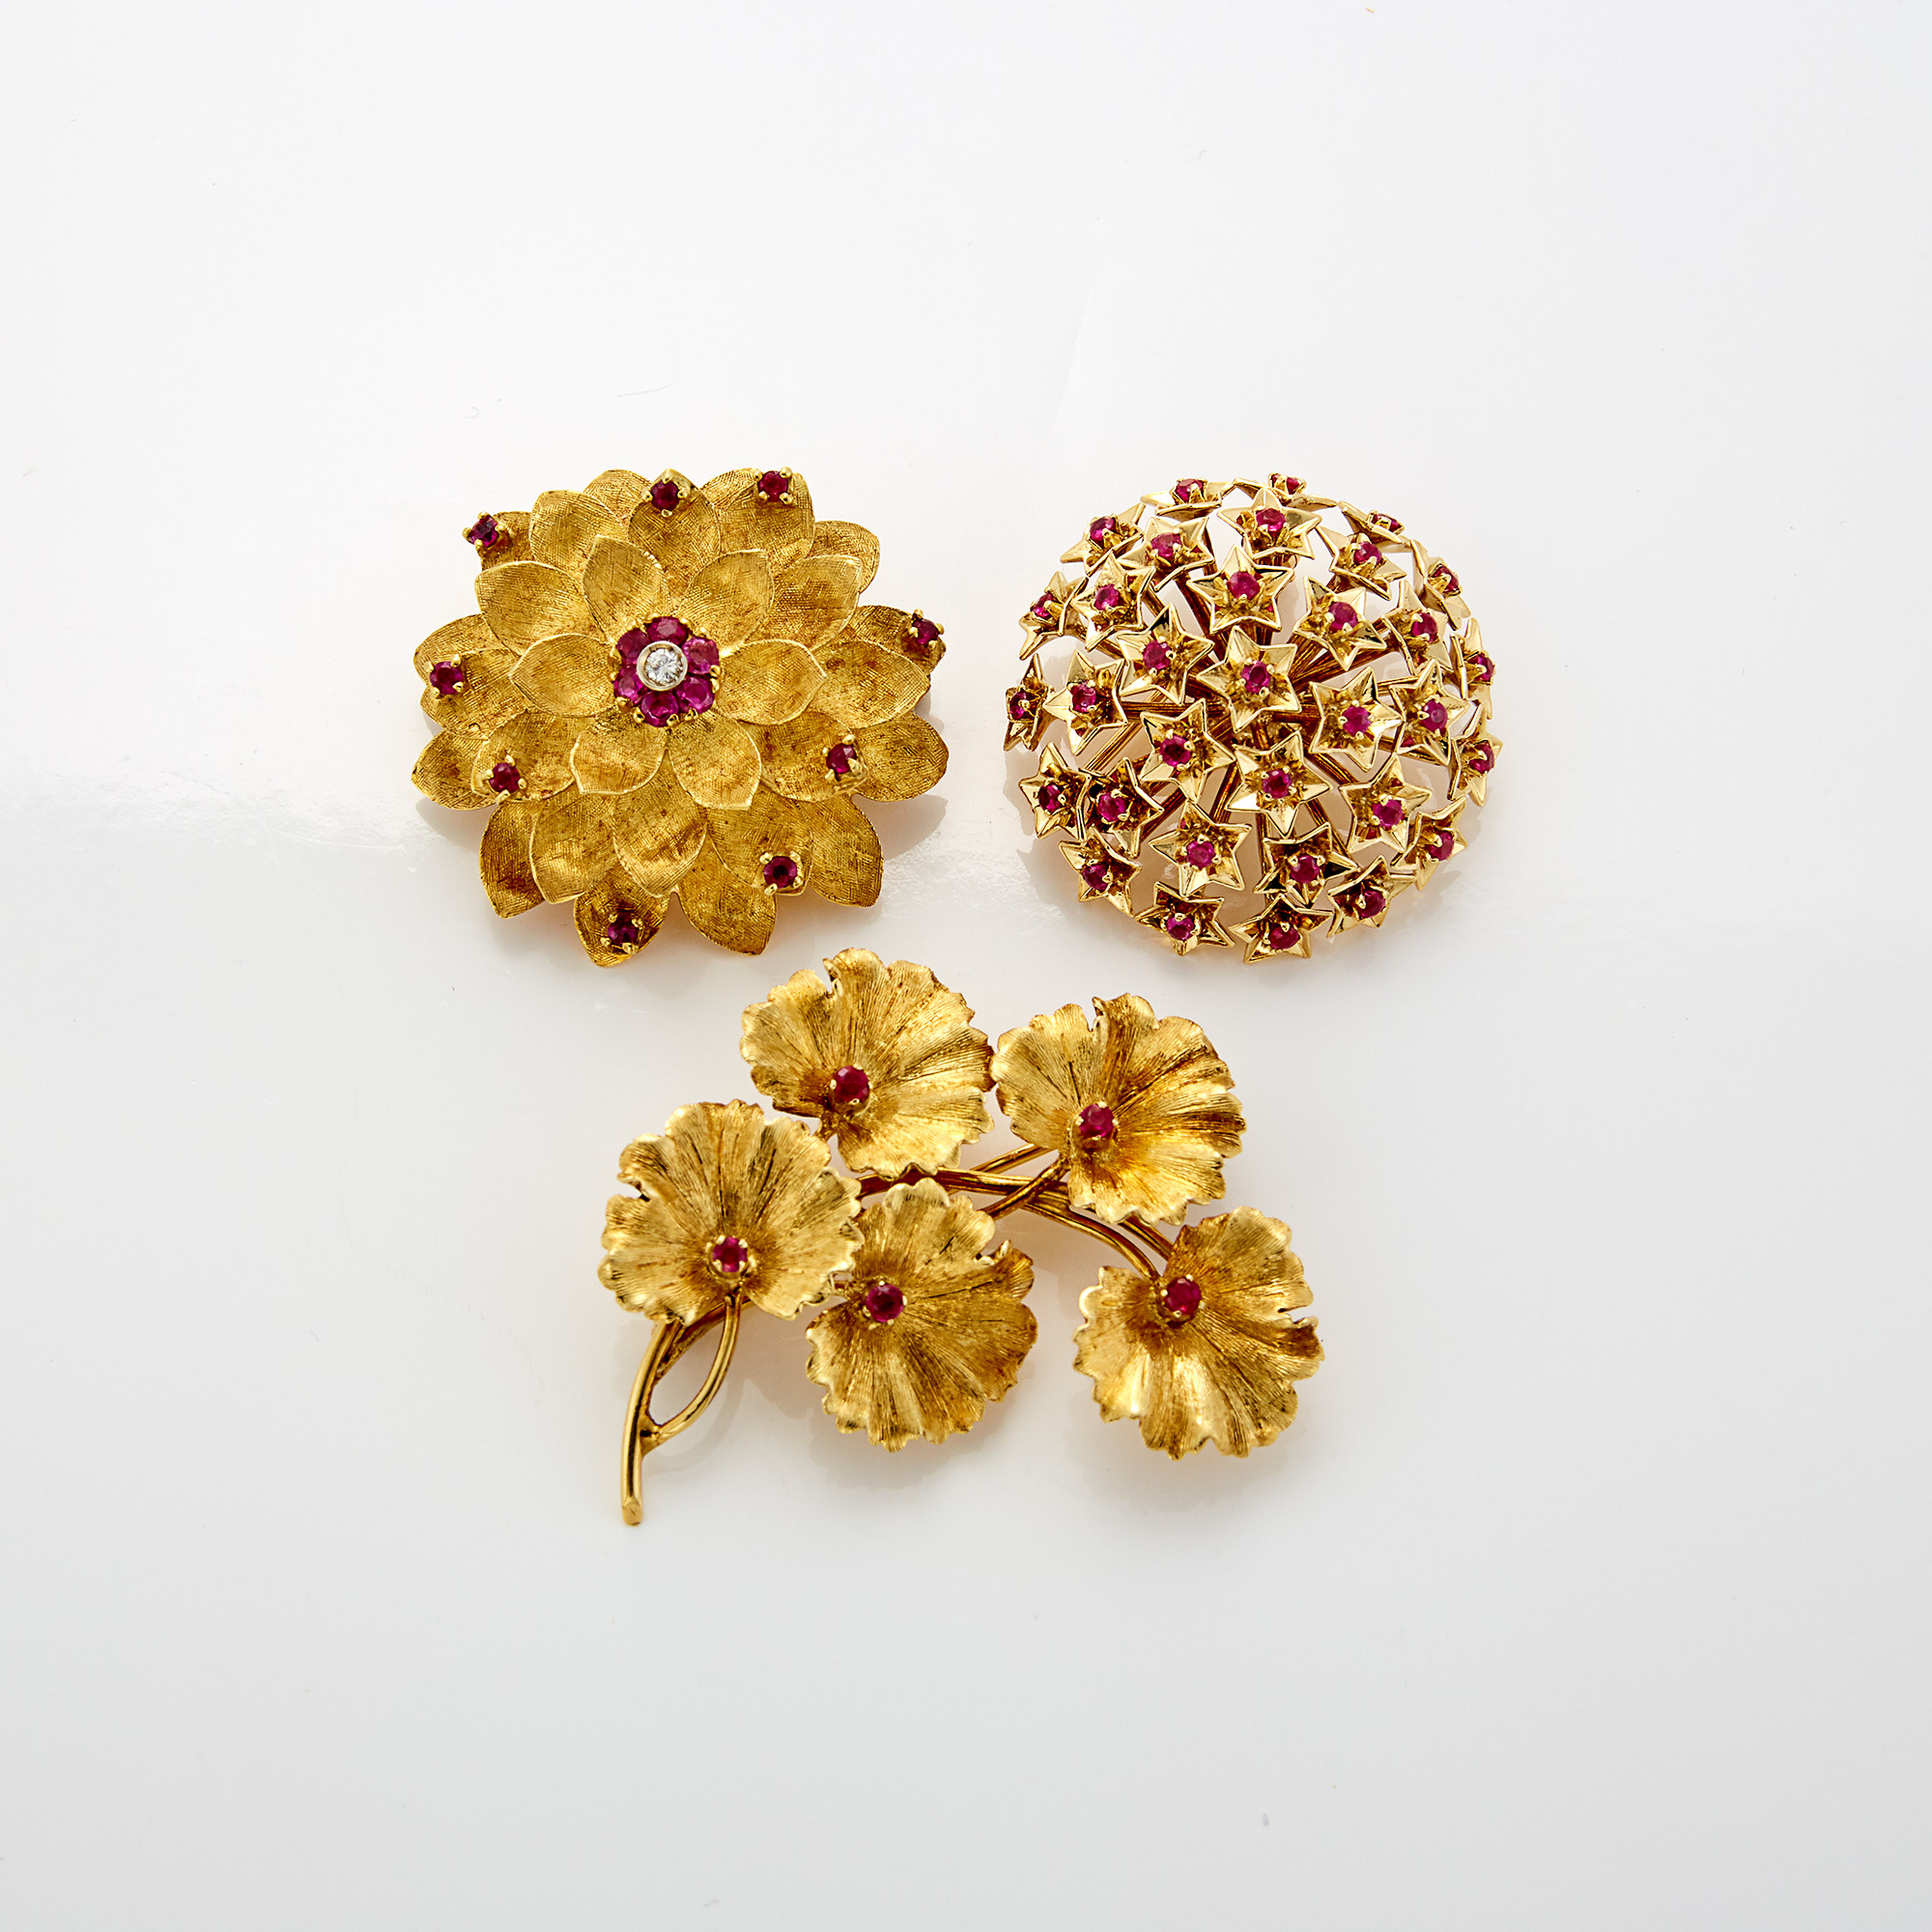 Lot image - Two Gold and Ruby Brooches, Tiffany & Co., Gold, Ruby and Diamond Flower Brooch, Cartier